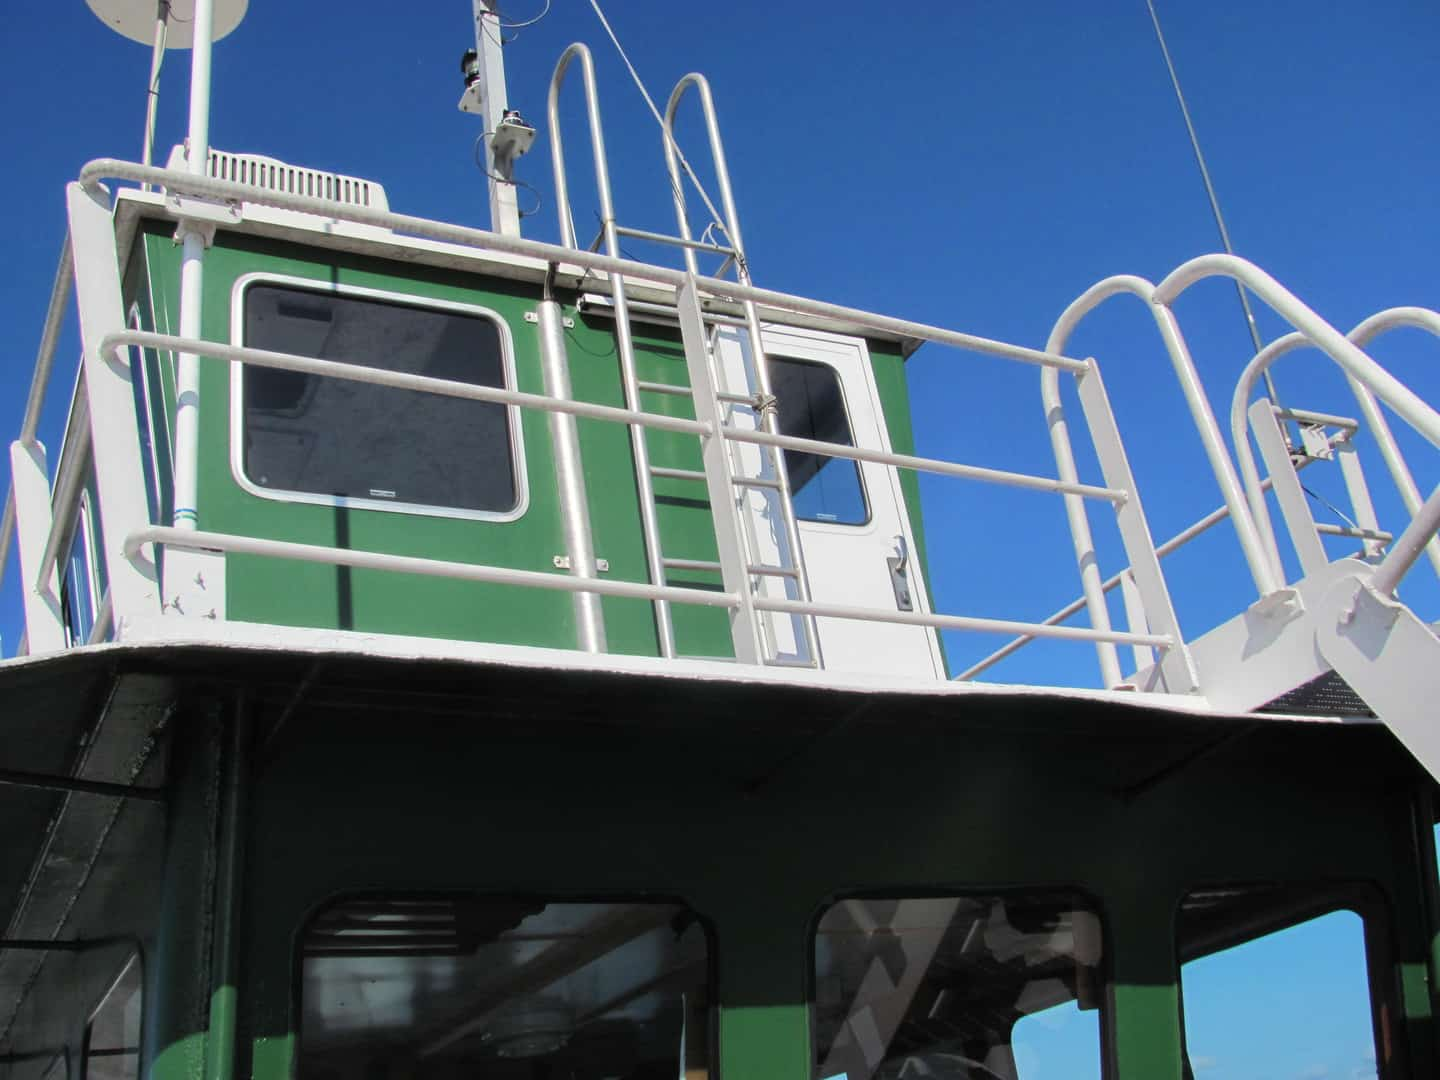 Liability for Vessel Collisions – Keeping a Proper Lookout